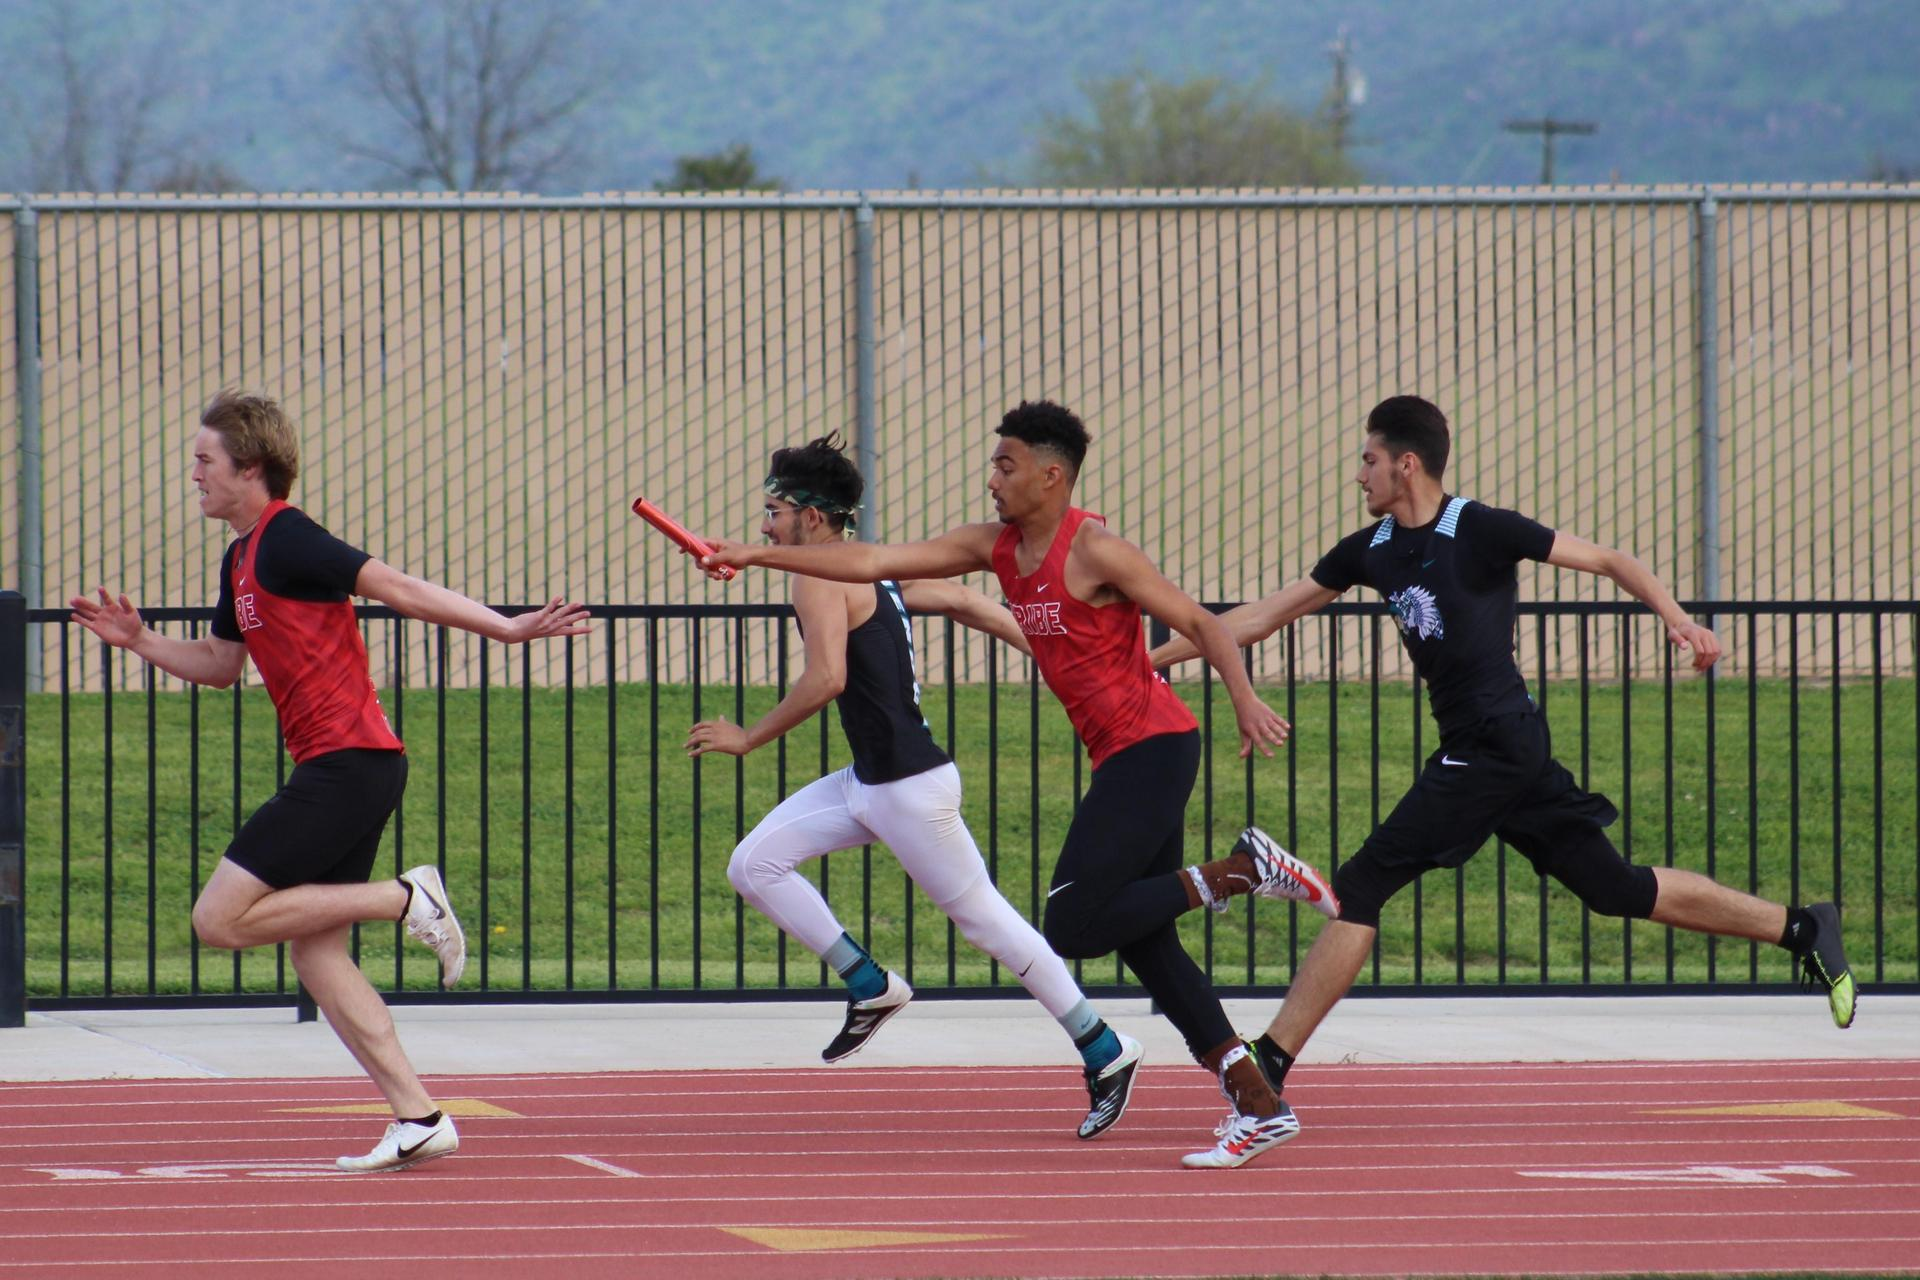 Track and field athletes in action at Orange Cove